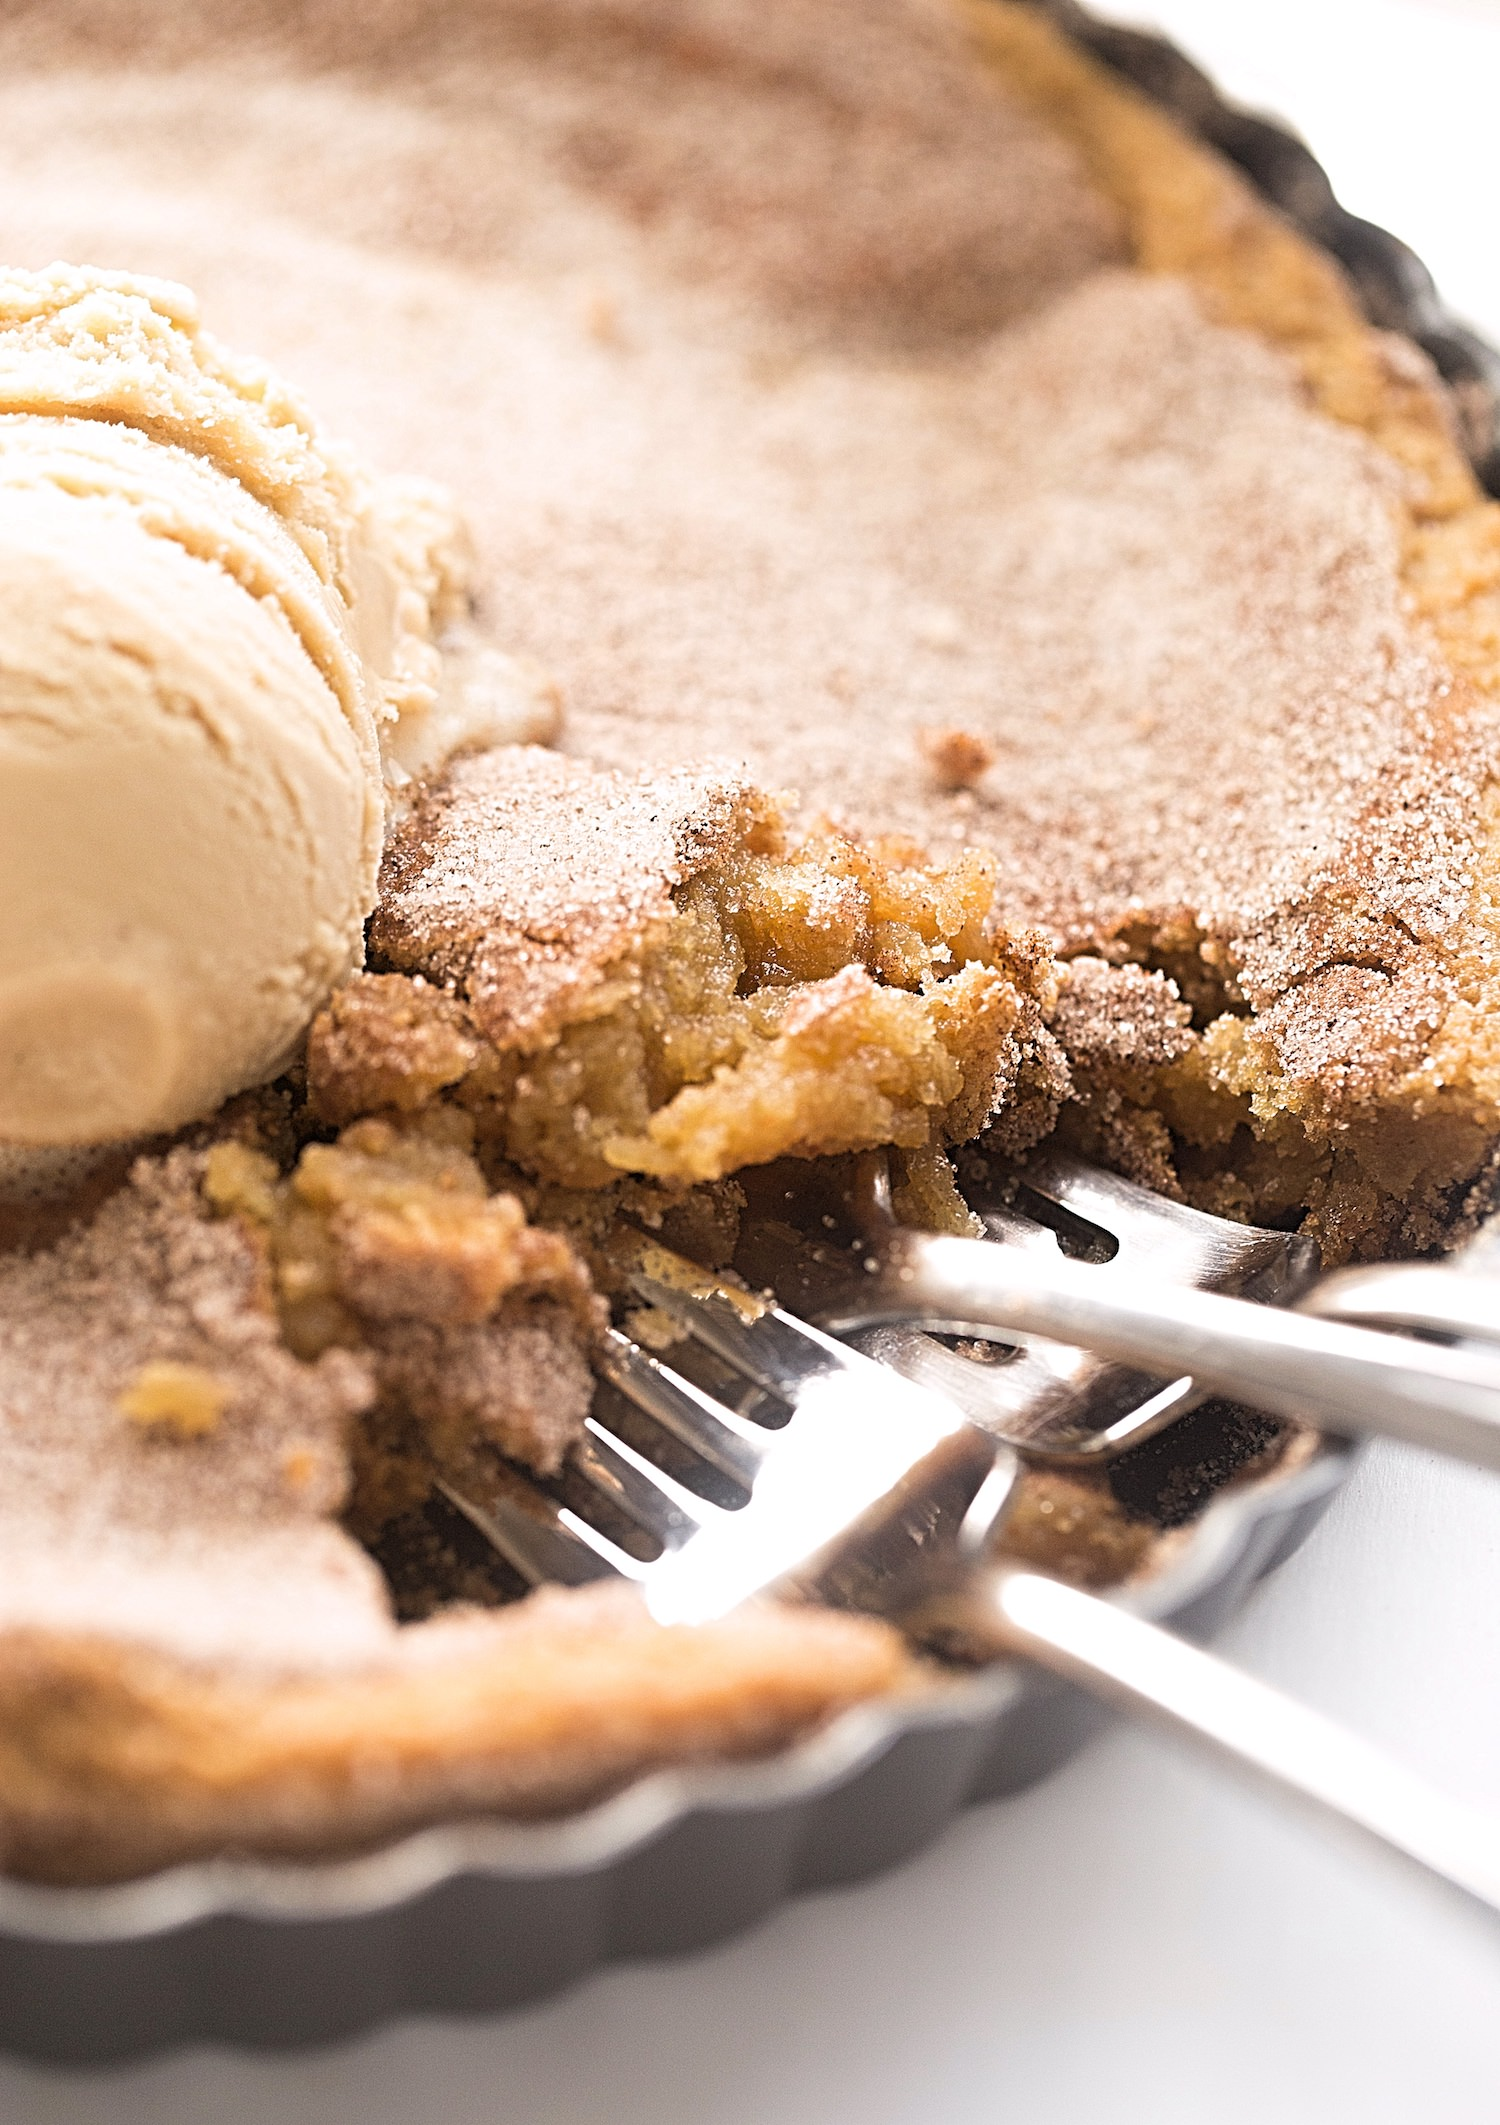 Brown Butter Snickerdoodle Cookie Tart: soft, gooey, rich, caramel flavored snickerdoodle cookie dough baked straight into a tart pan. | TrufflesandTrends.com